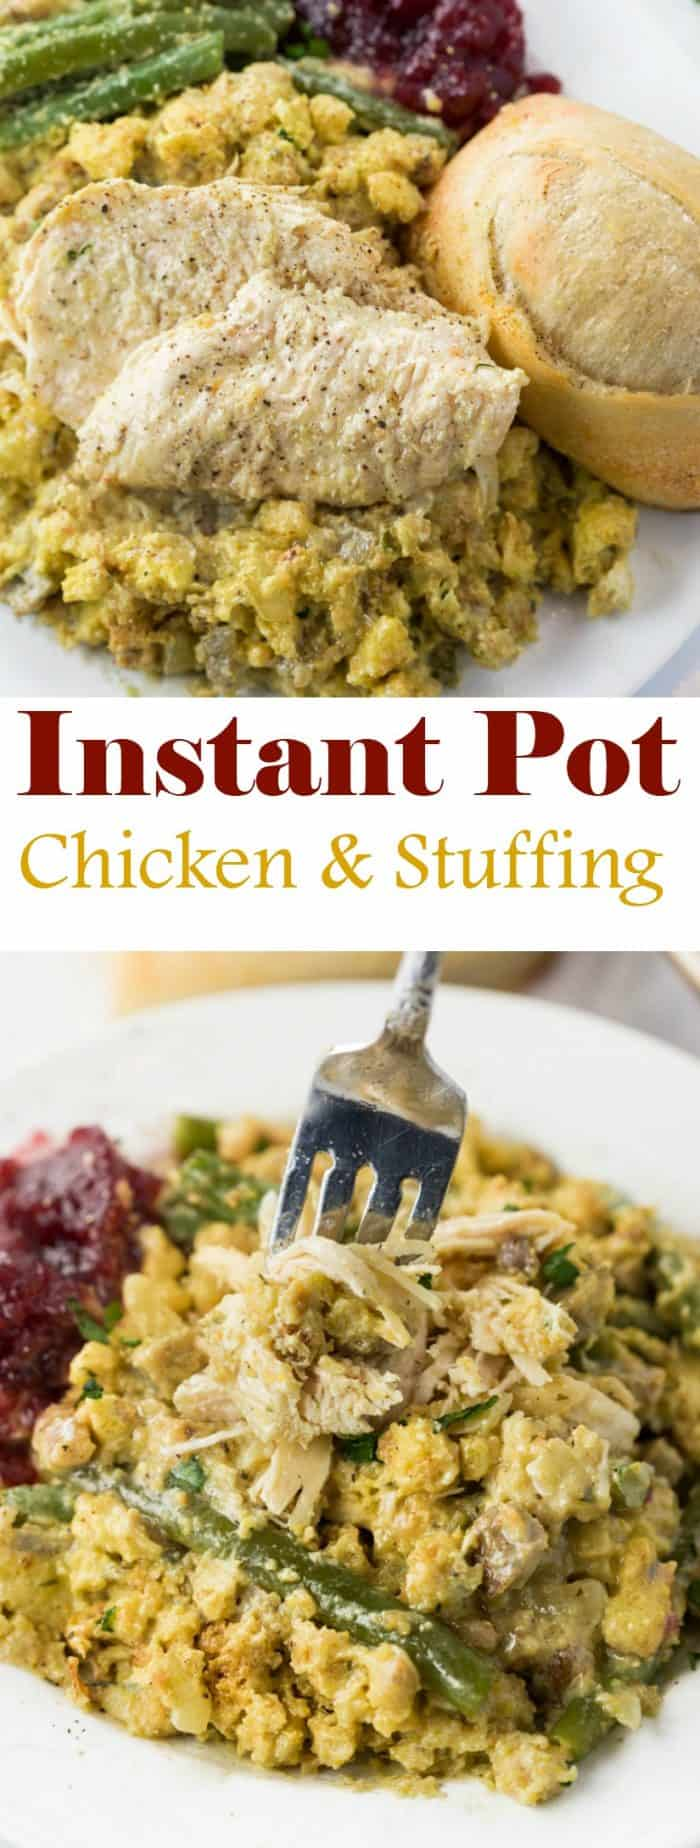 Instant Pot Chicken and Stuffing: Moist and flavorful chicken that's quickly cooked to perfection along with savory stuffing and fresh green beans. With a max of 22 minutes of cooking time, you'll be eating in no time! | The Cozy Cook| #instantpot #chicken #stuffing #dinner #recipe